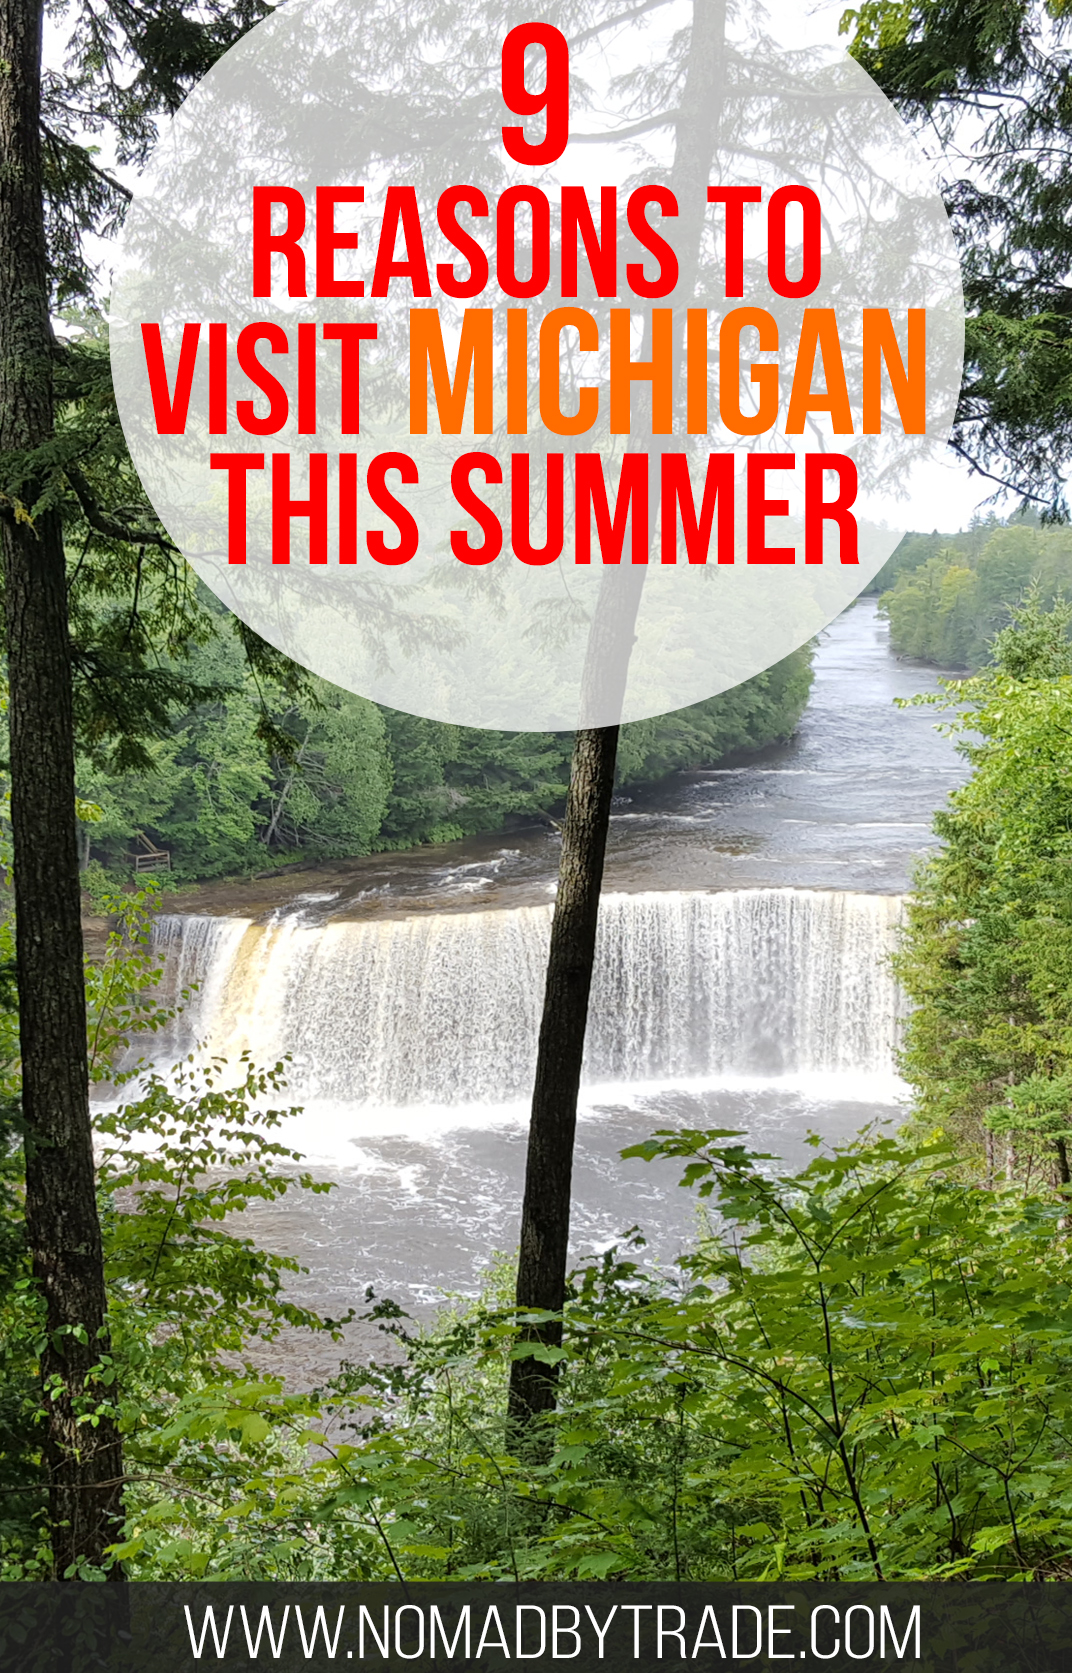 From celebrations of cherries, hot air balloon festivals, international fireworks, and Great Lake paradises, Michigan should be on your summer vacation bucket list. Here are nine reasons to make a visit this summer.